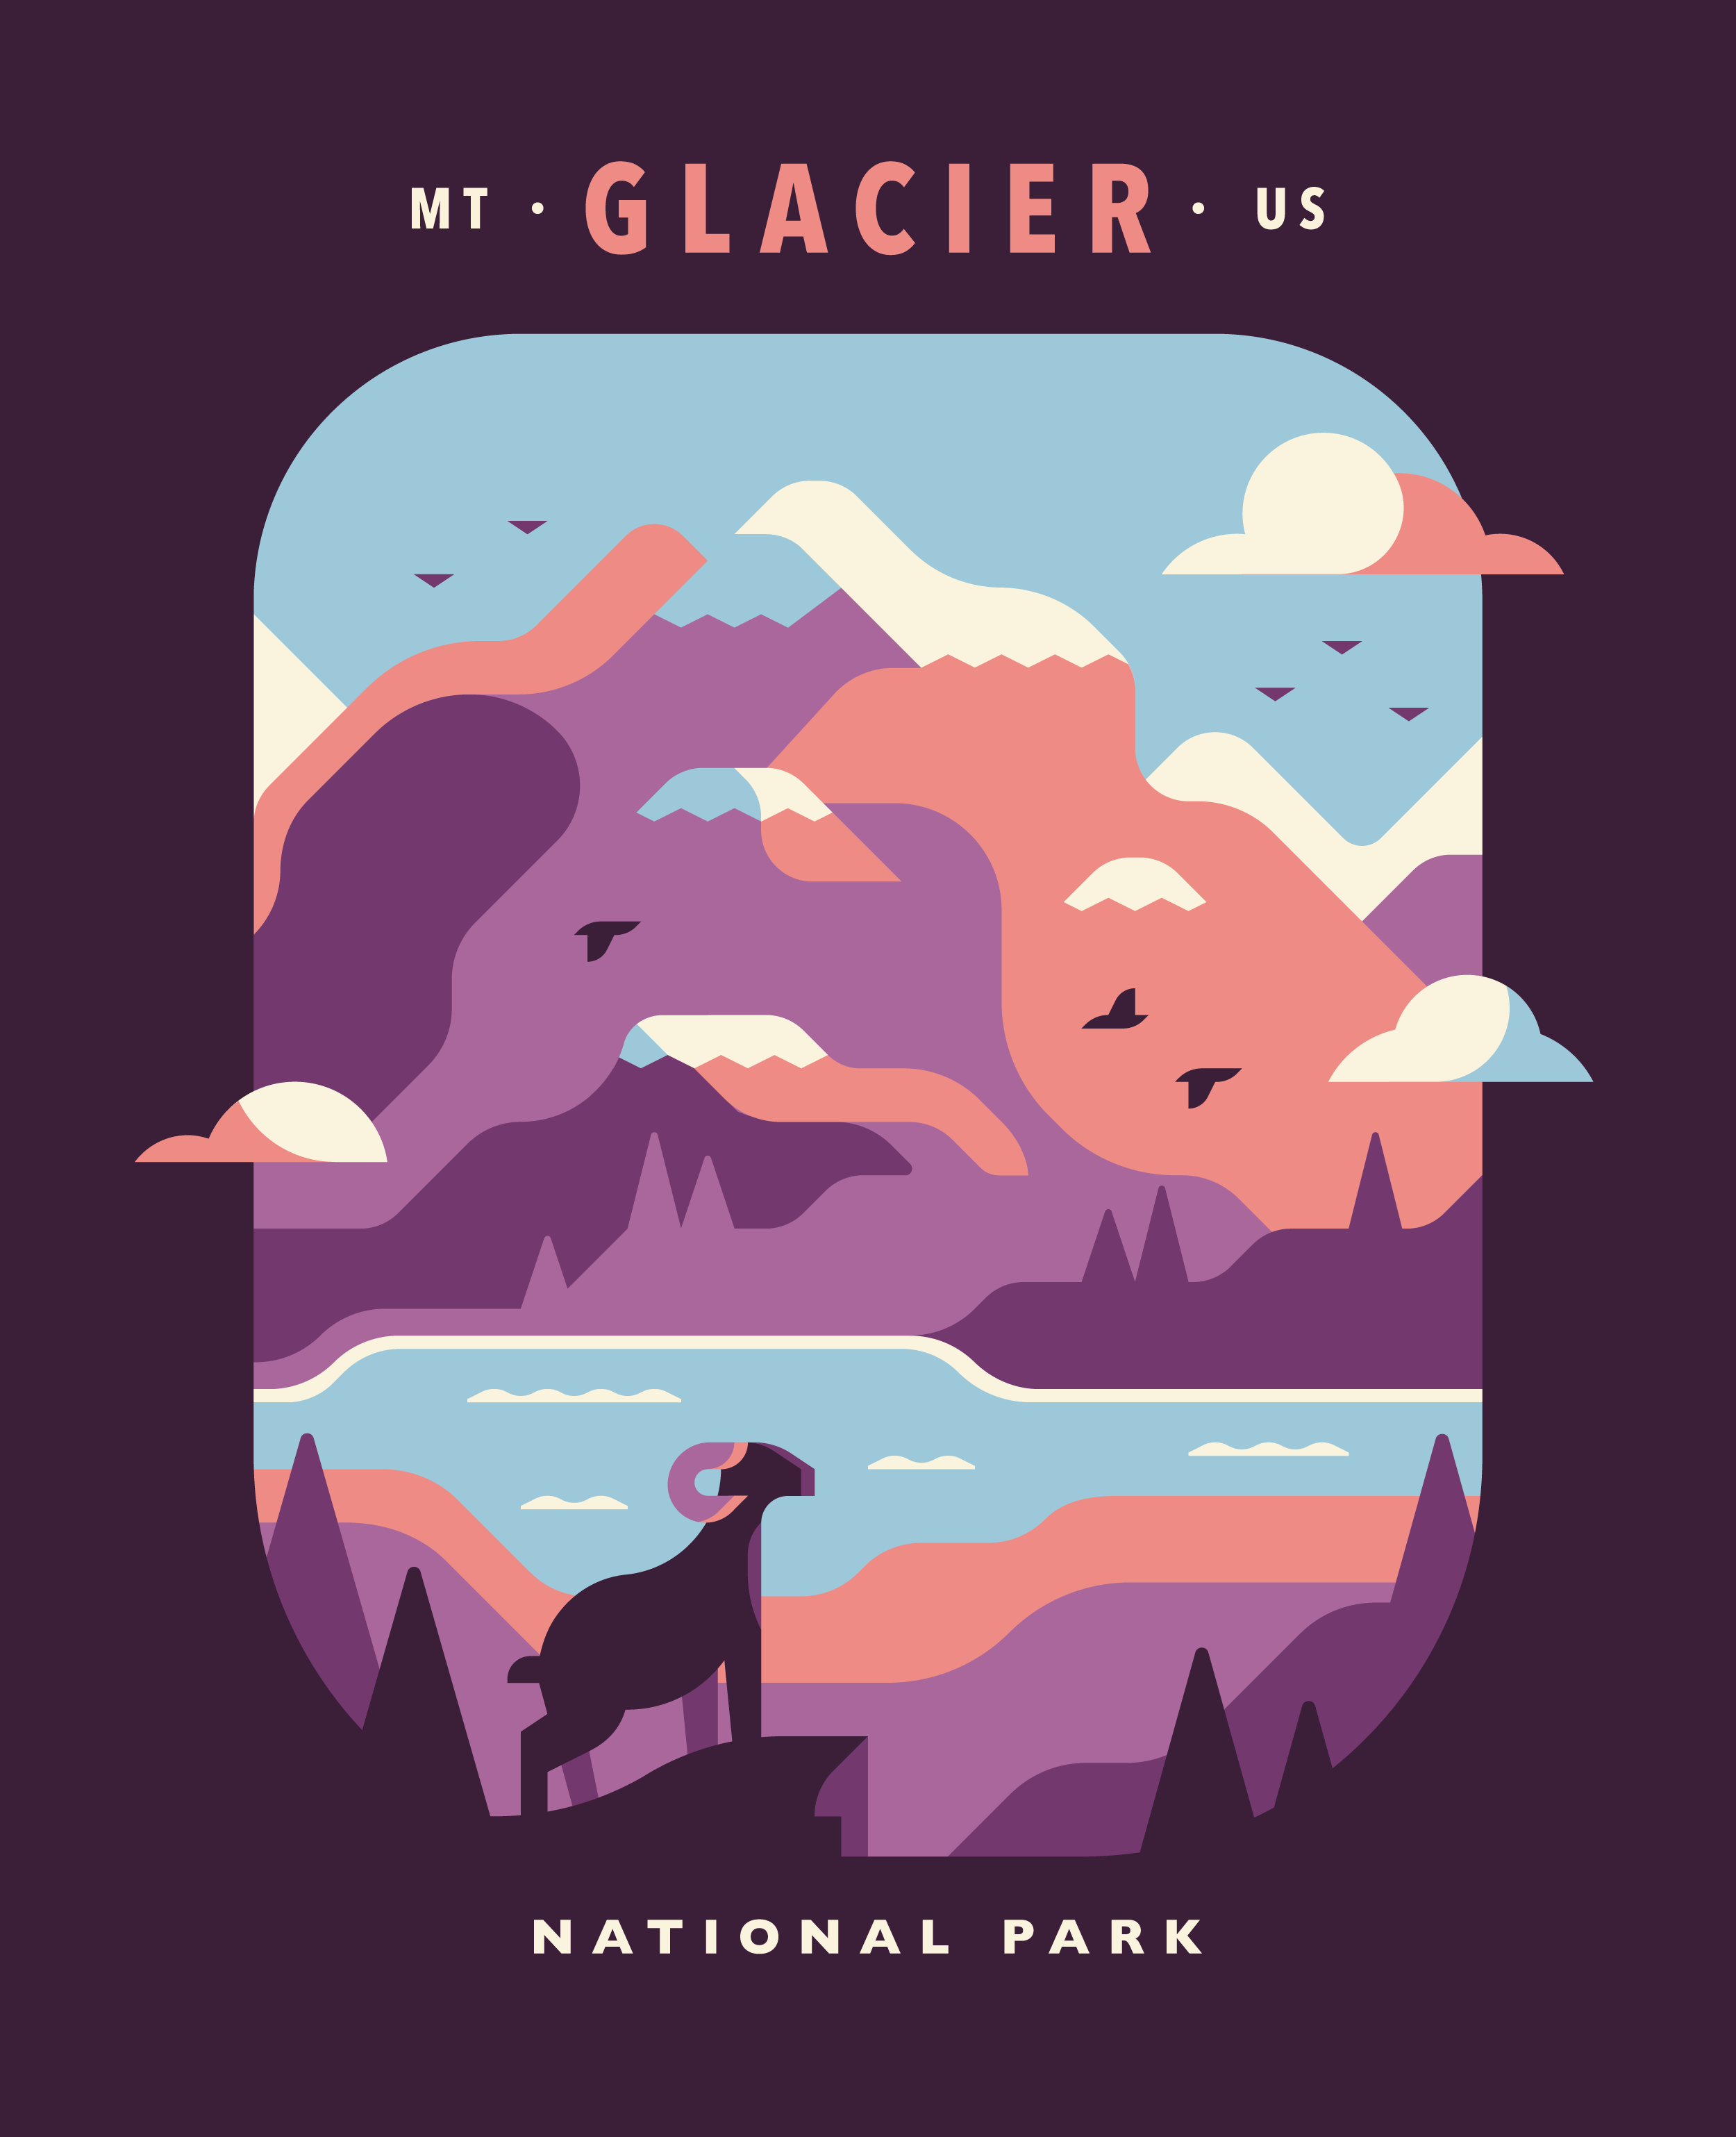 Glacier National Park poster design by Matt Anderson and Canopy Design. Limited color illustration of mountains, trees and a bighorn sheep.